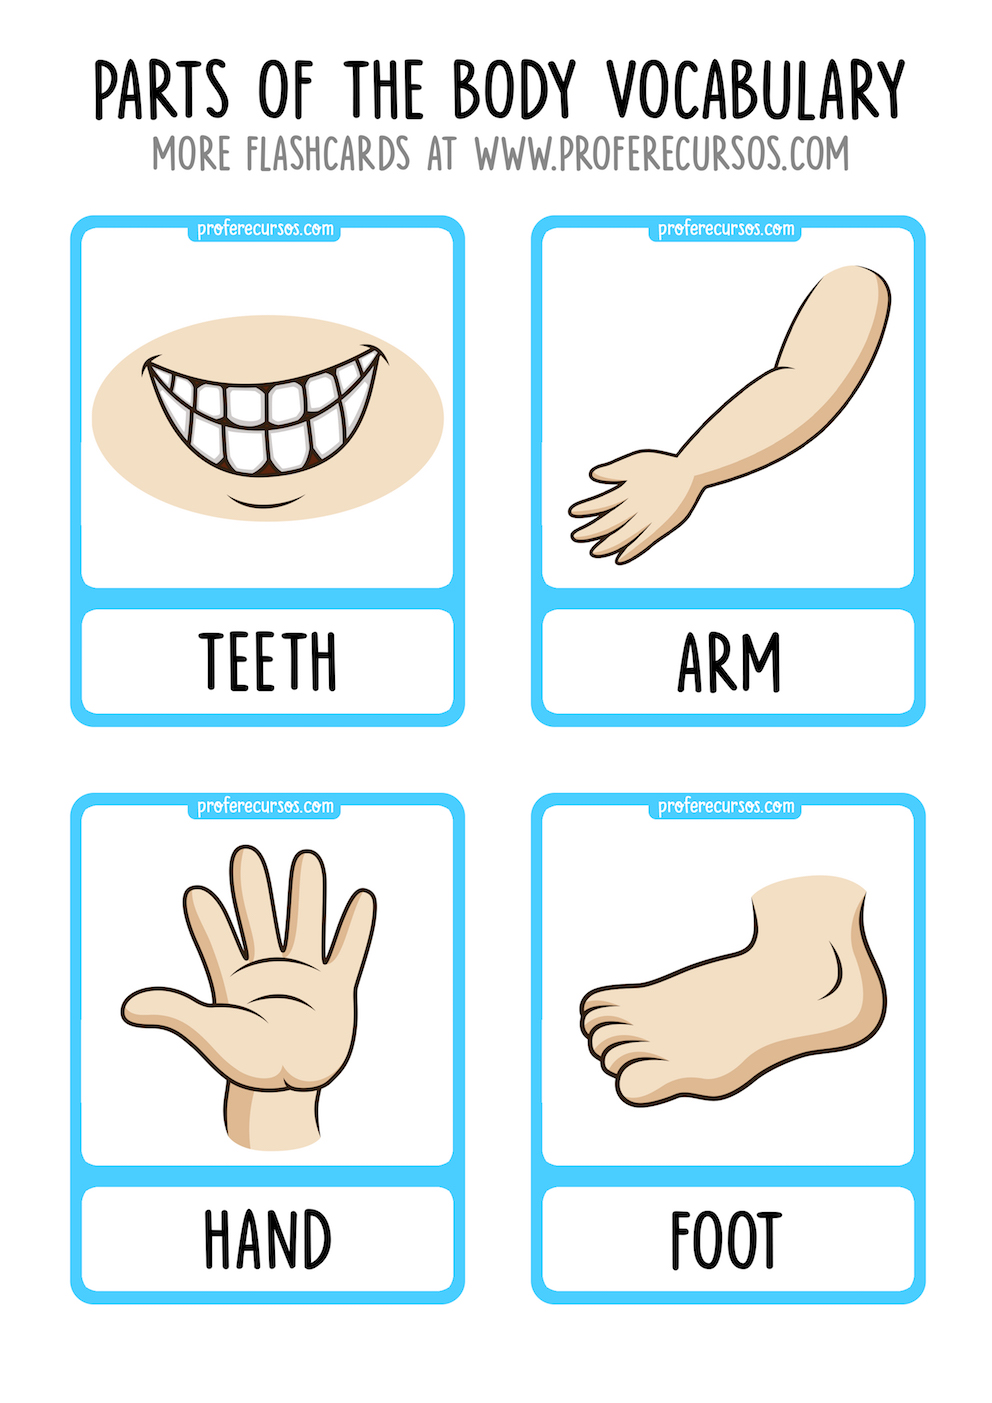 Parts of the Body Vocabulary Flashcards